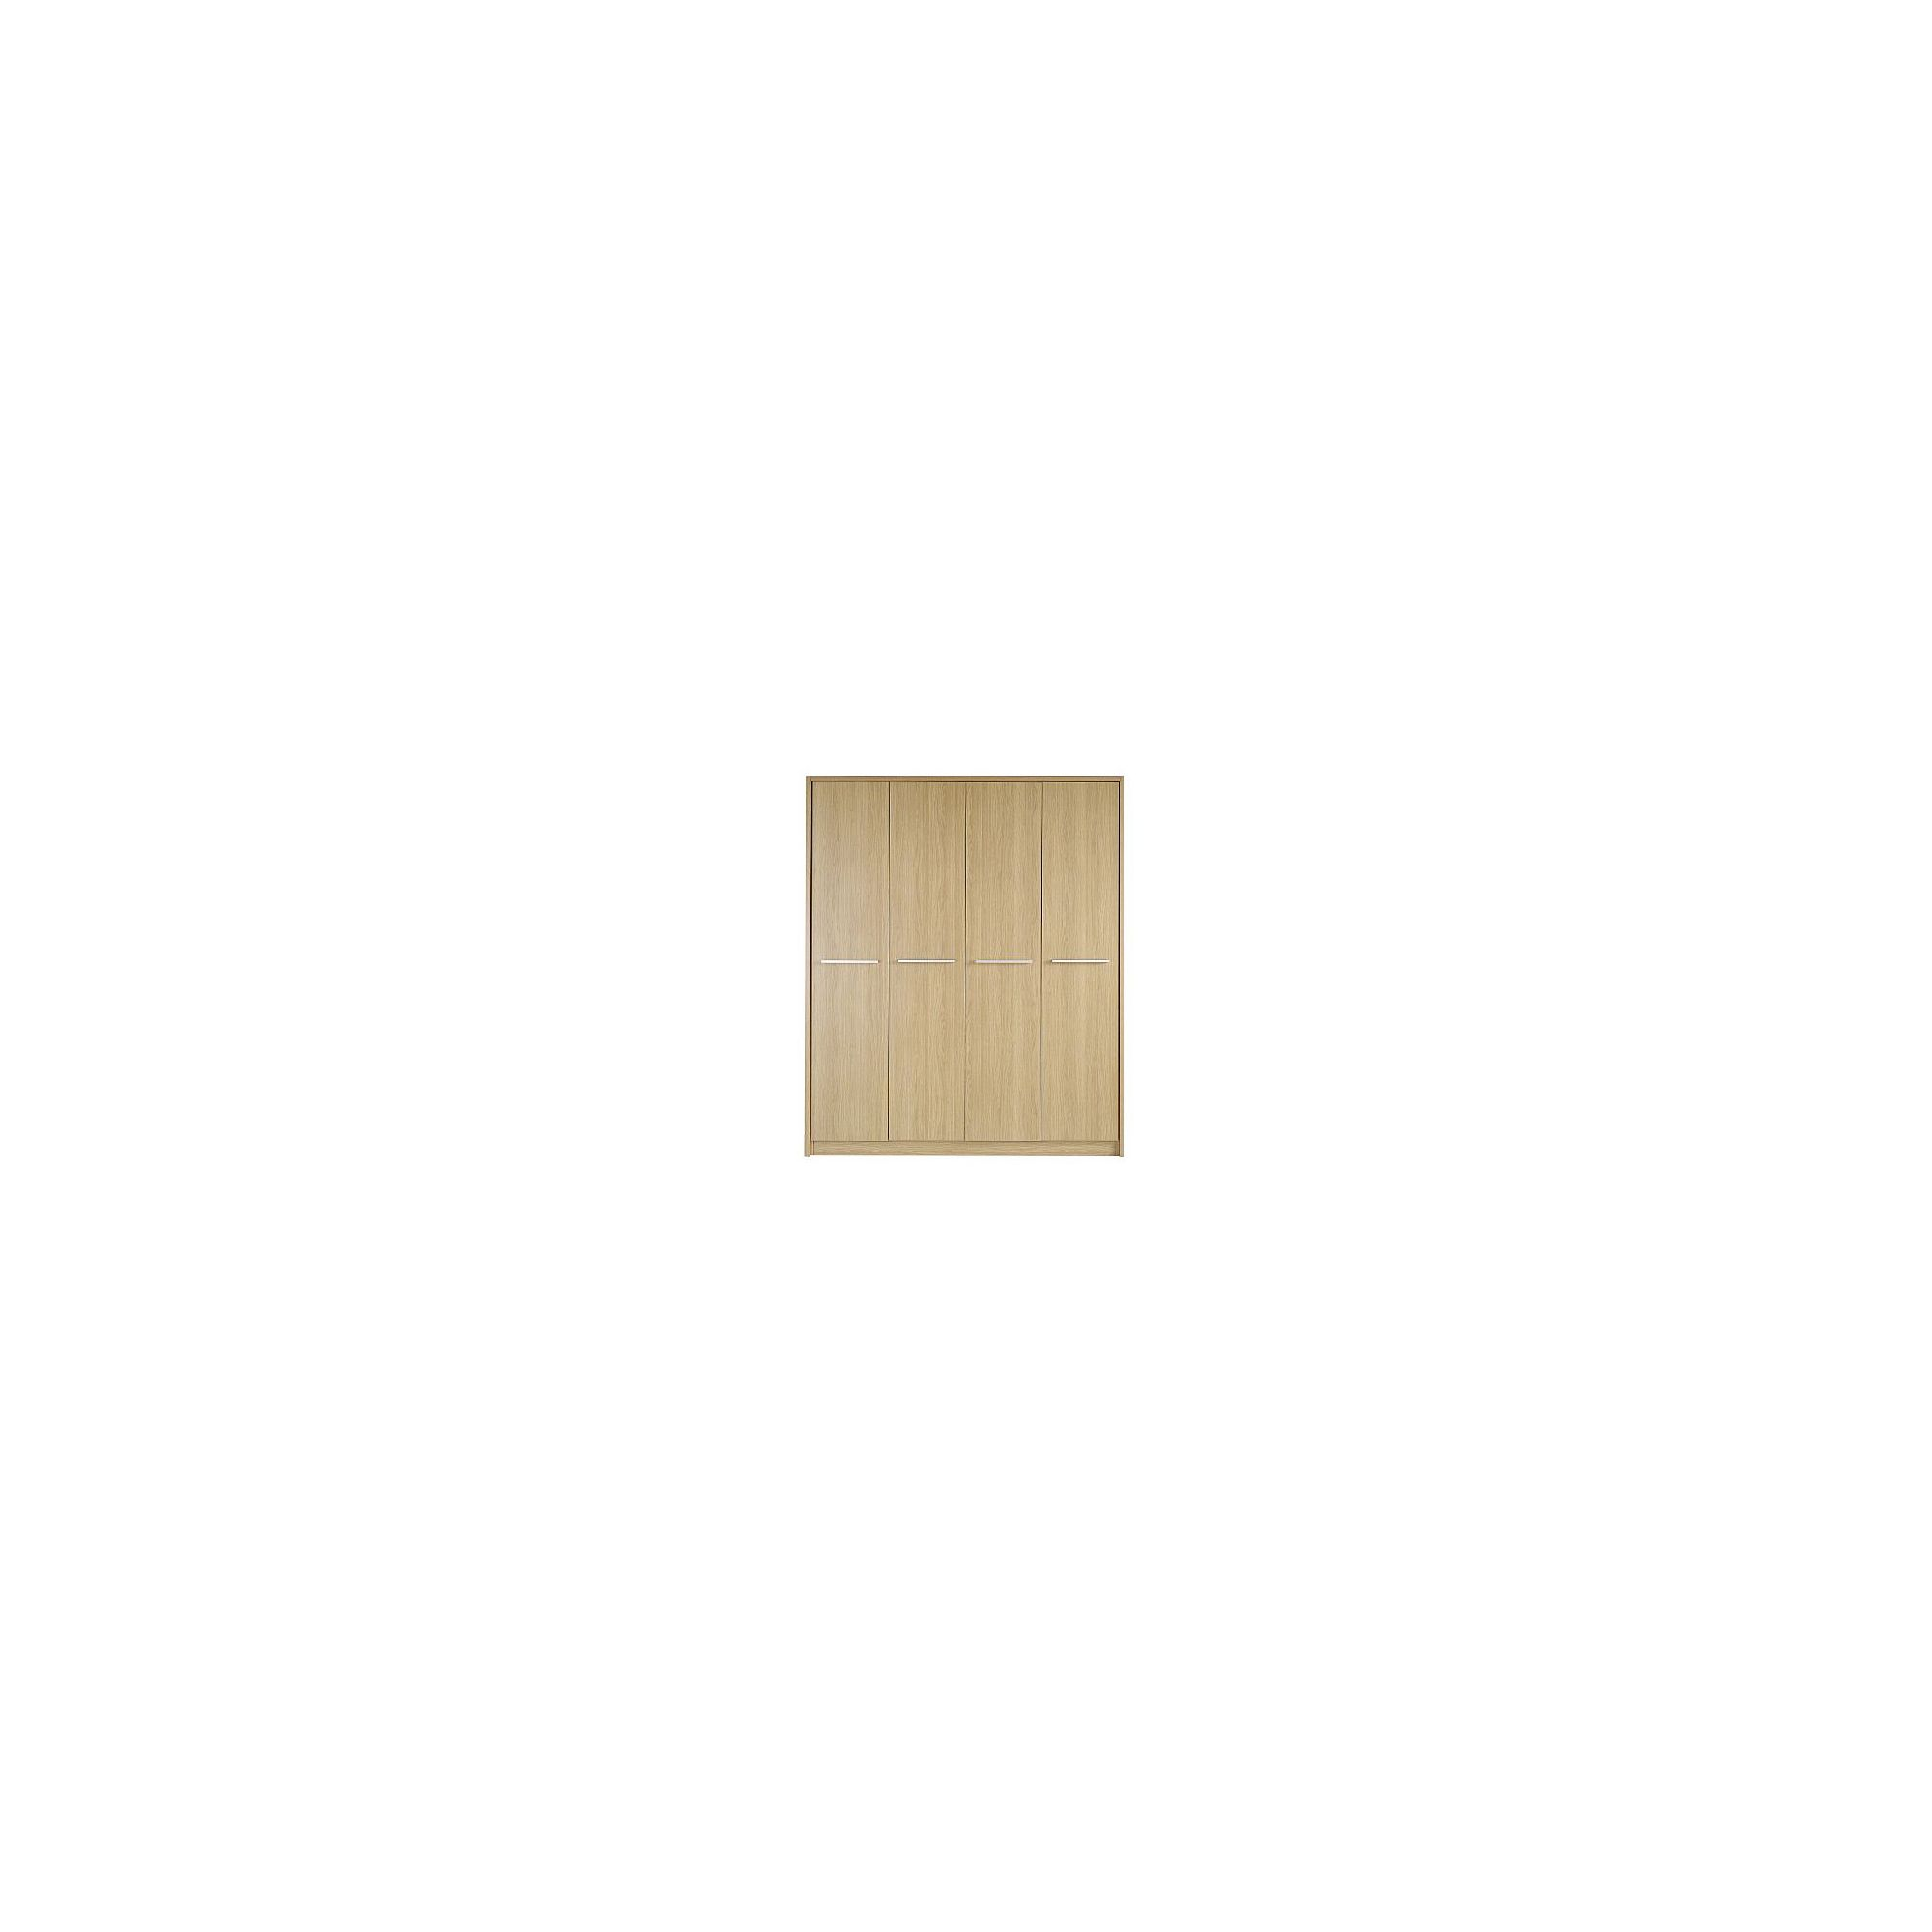 Kit Form Kit-form Delux Four Door Plain Wardrobe in Oak at Tesco Direct